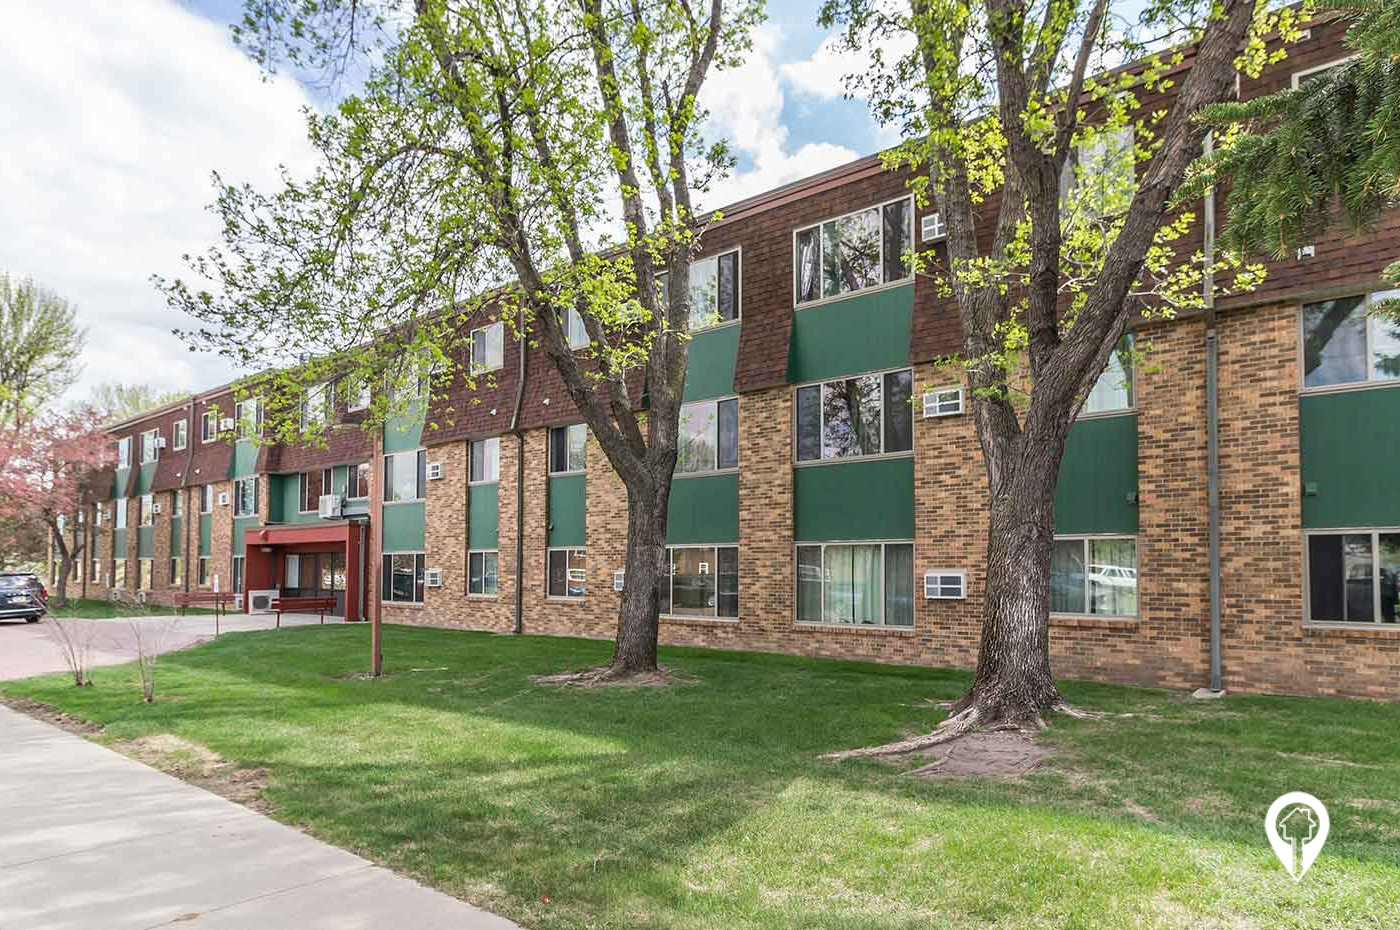 Greenridge Apartments